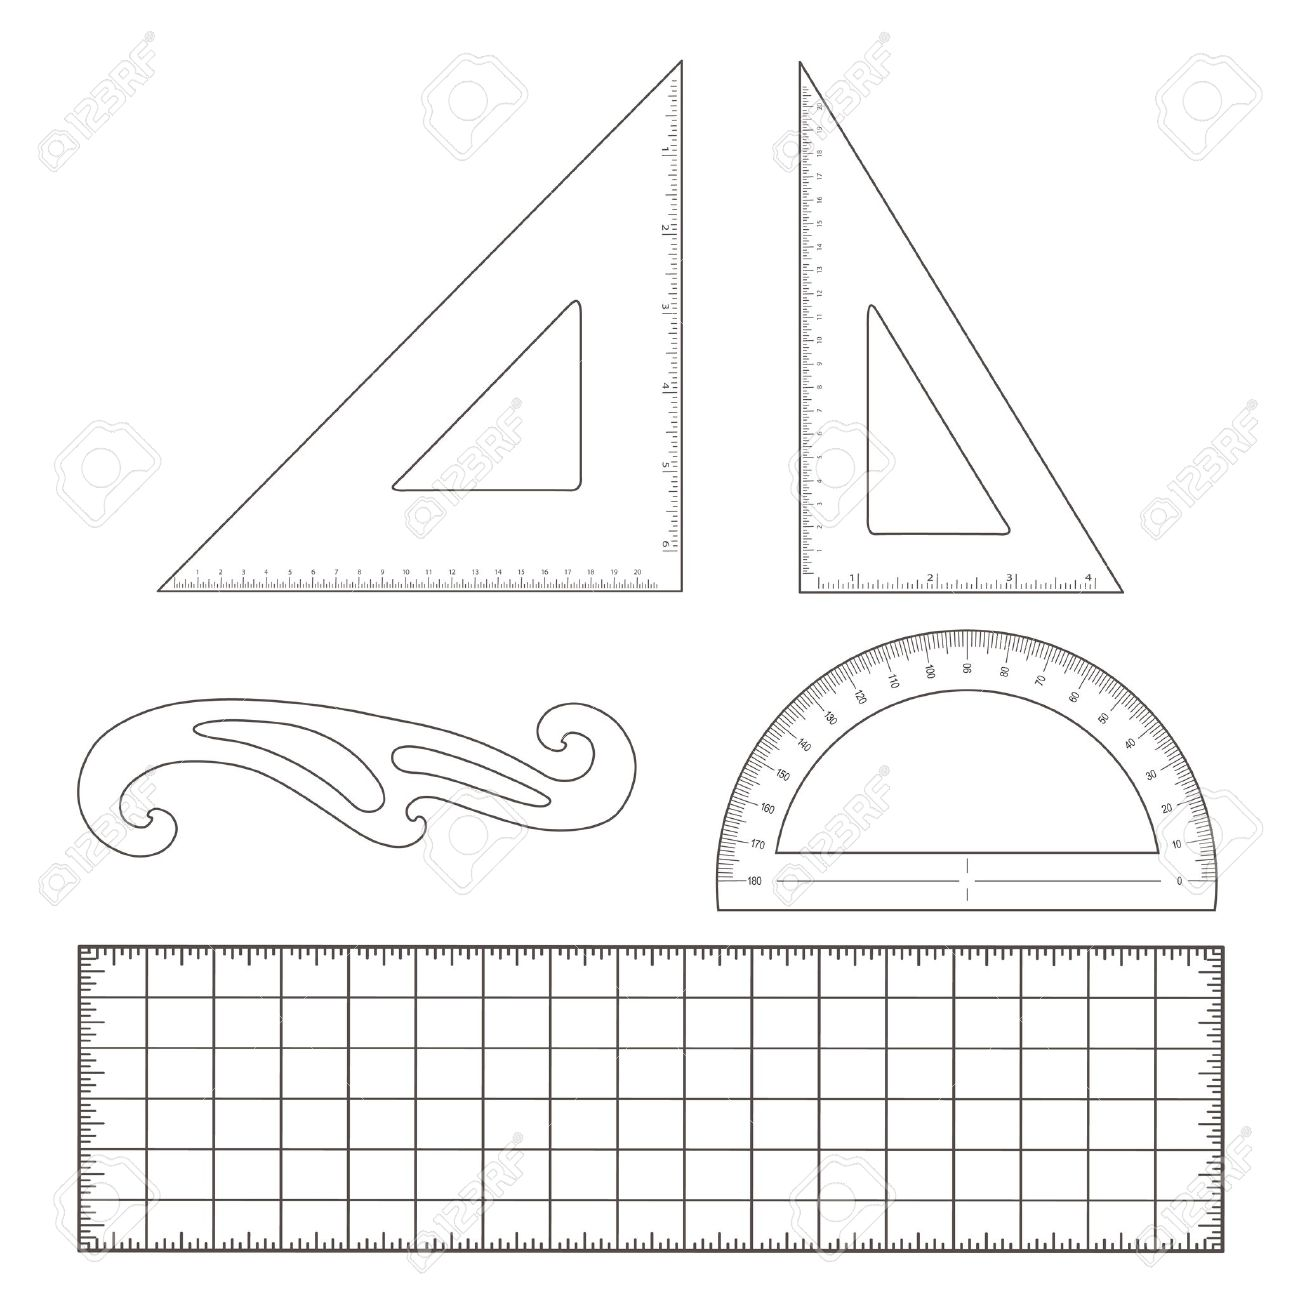 Drafting Tools For Architecture And Engineering 45 Degree Triangle, 60  Degree Triangle, Ruler,